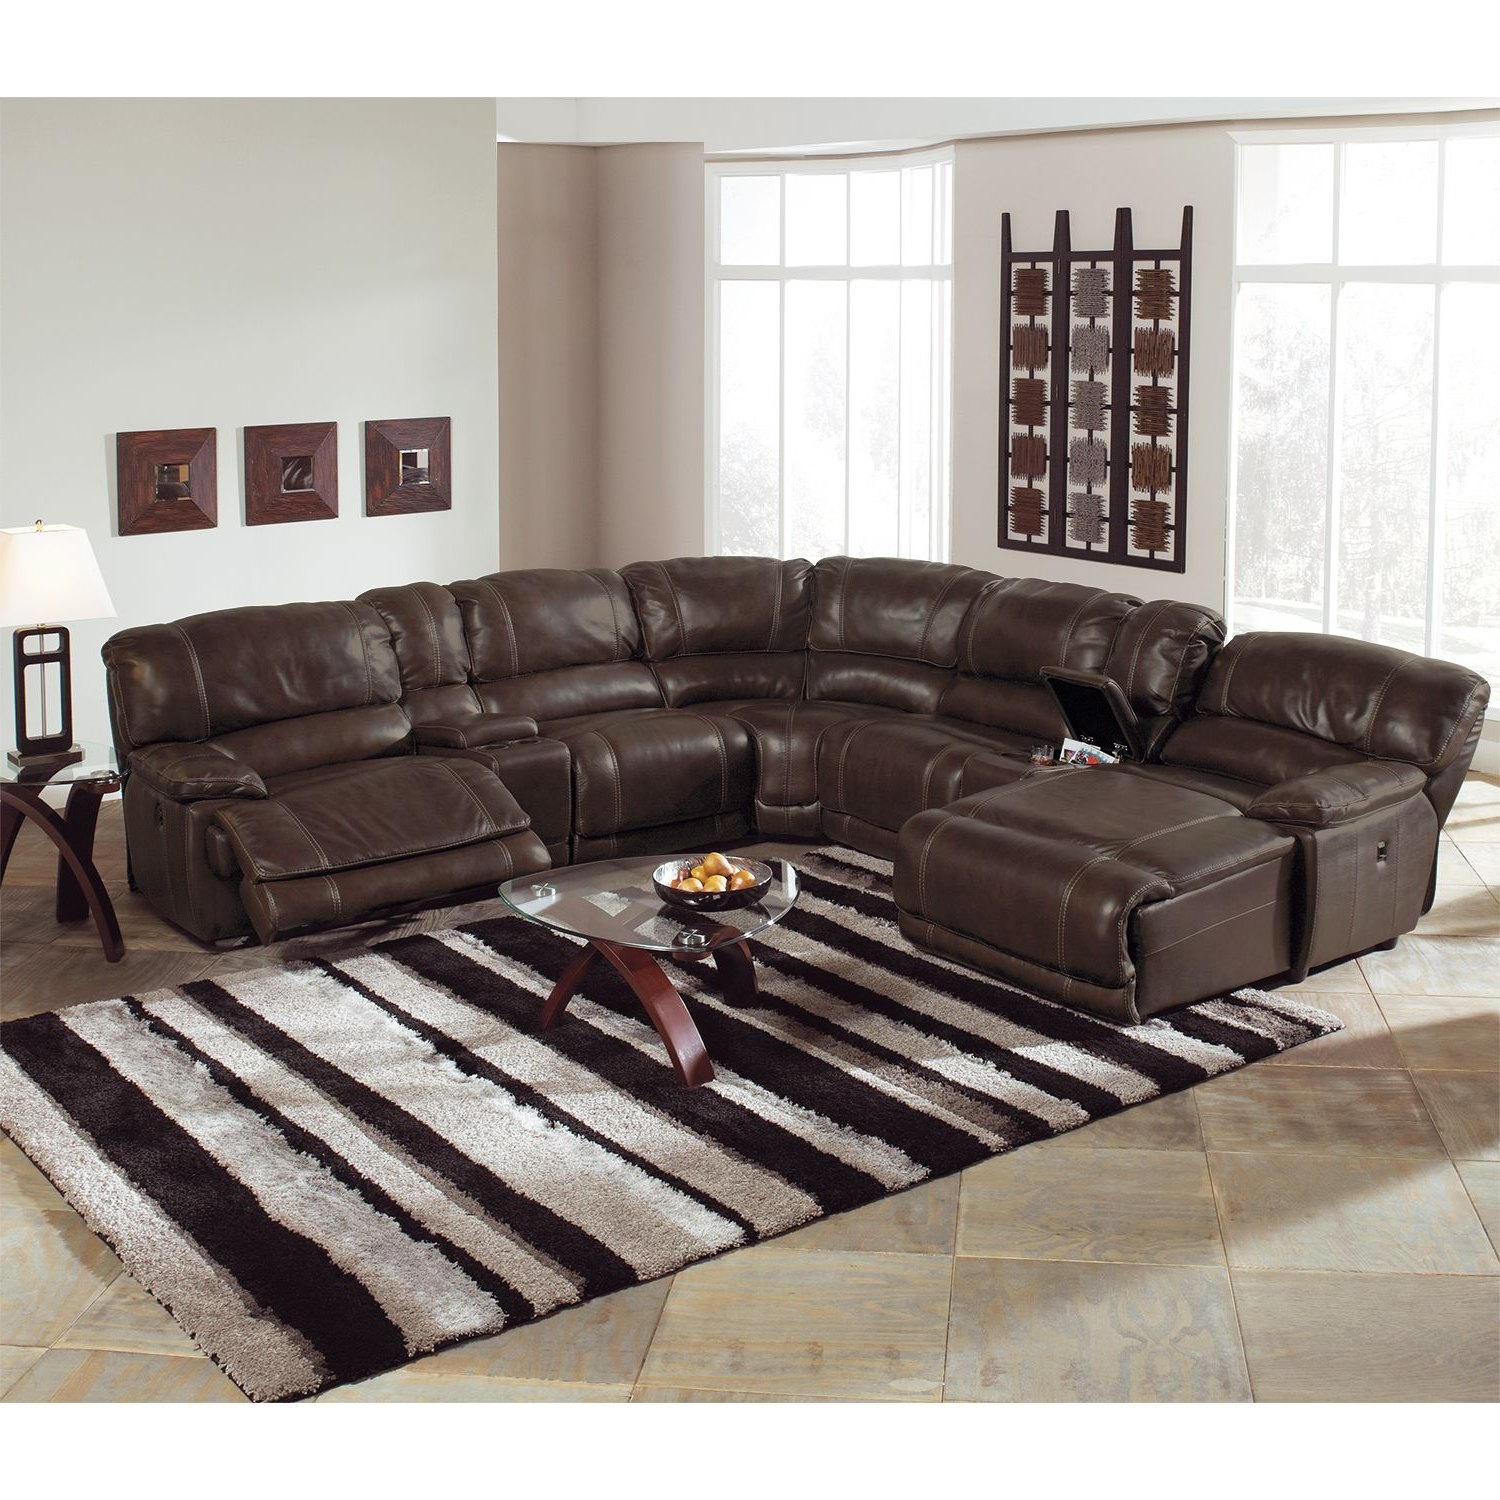 Value City With Jackson 6 Piece Power Reclining Sectionals With  Sleeper (View 18 of 20)